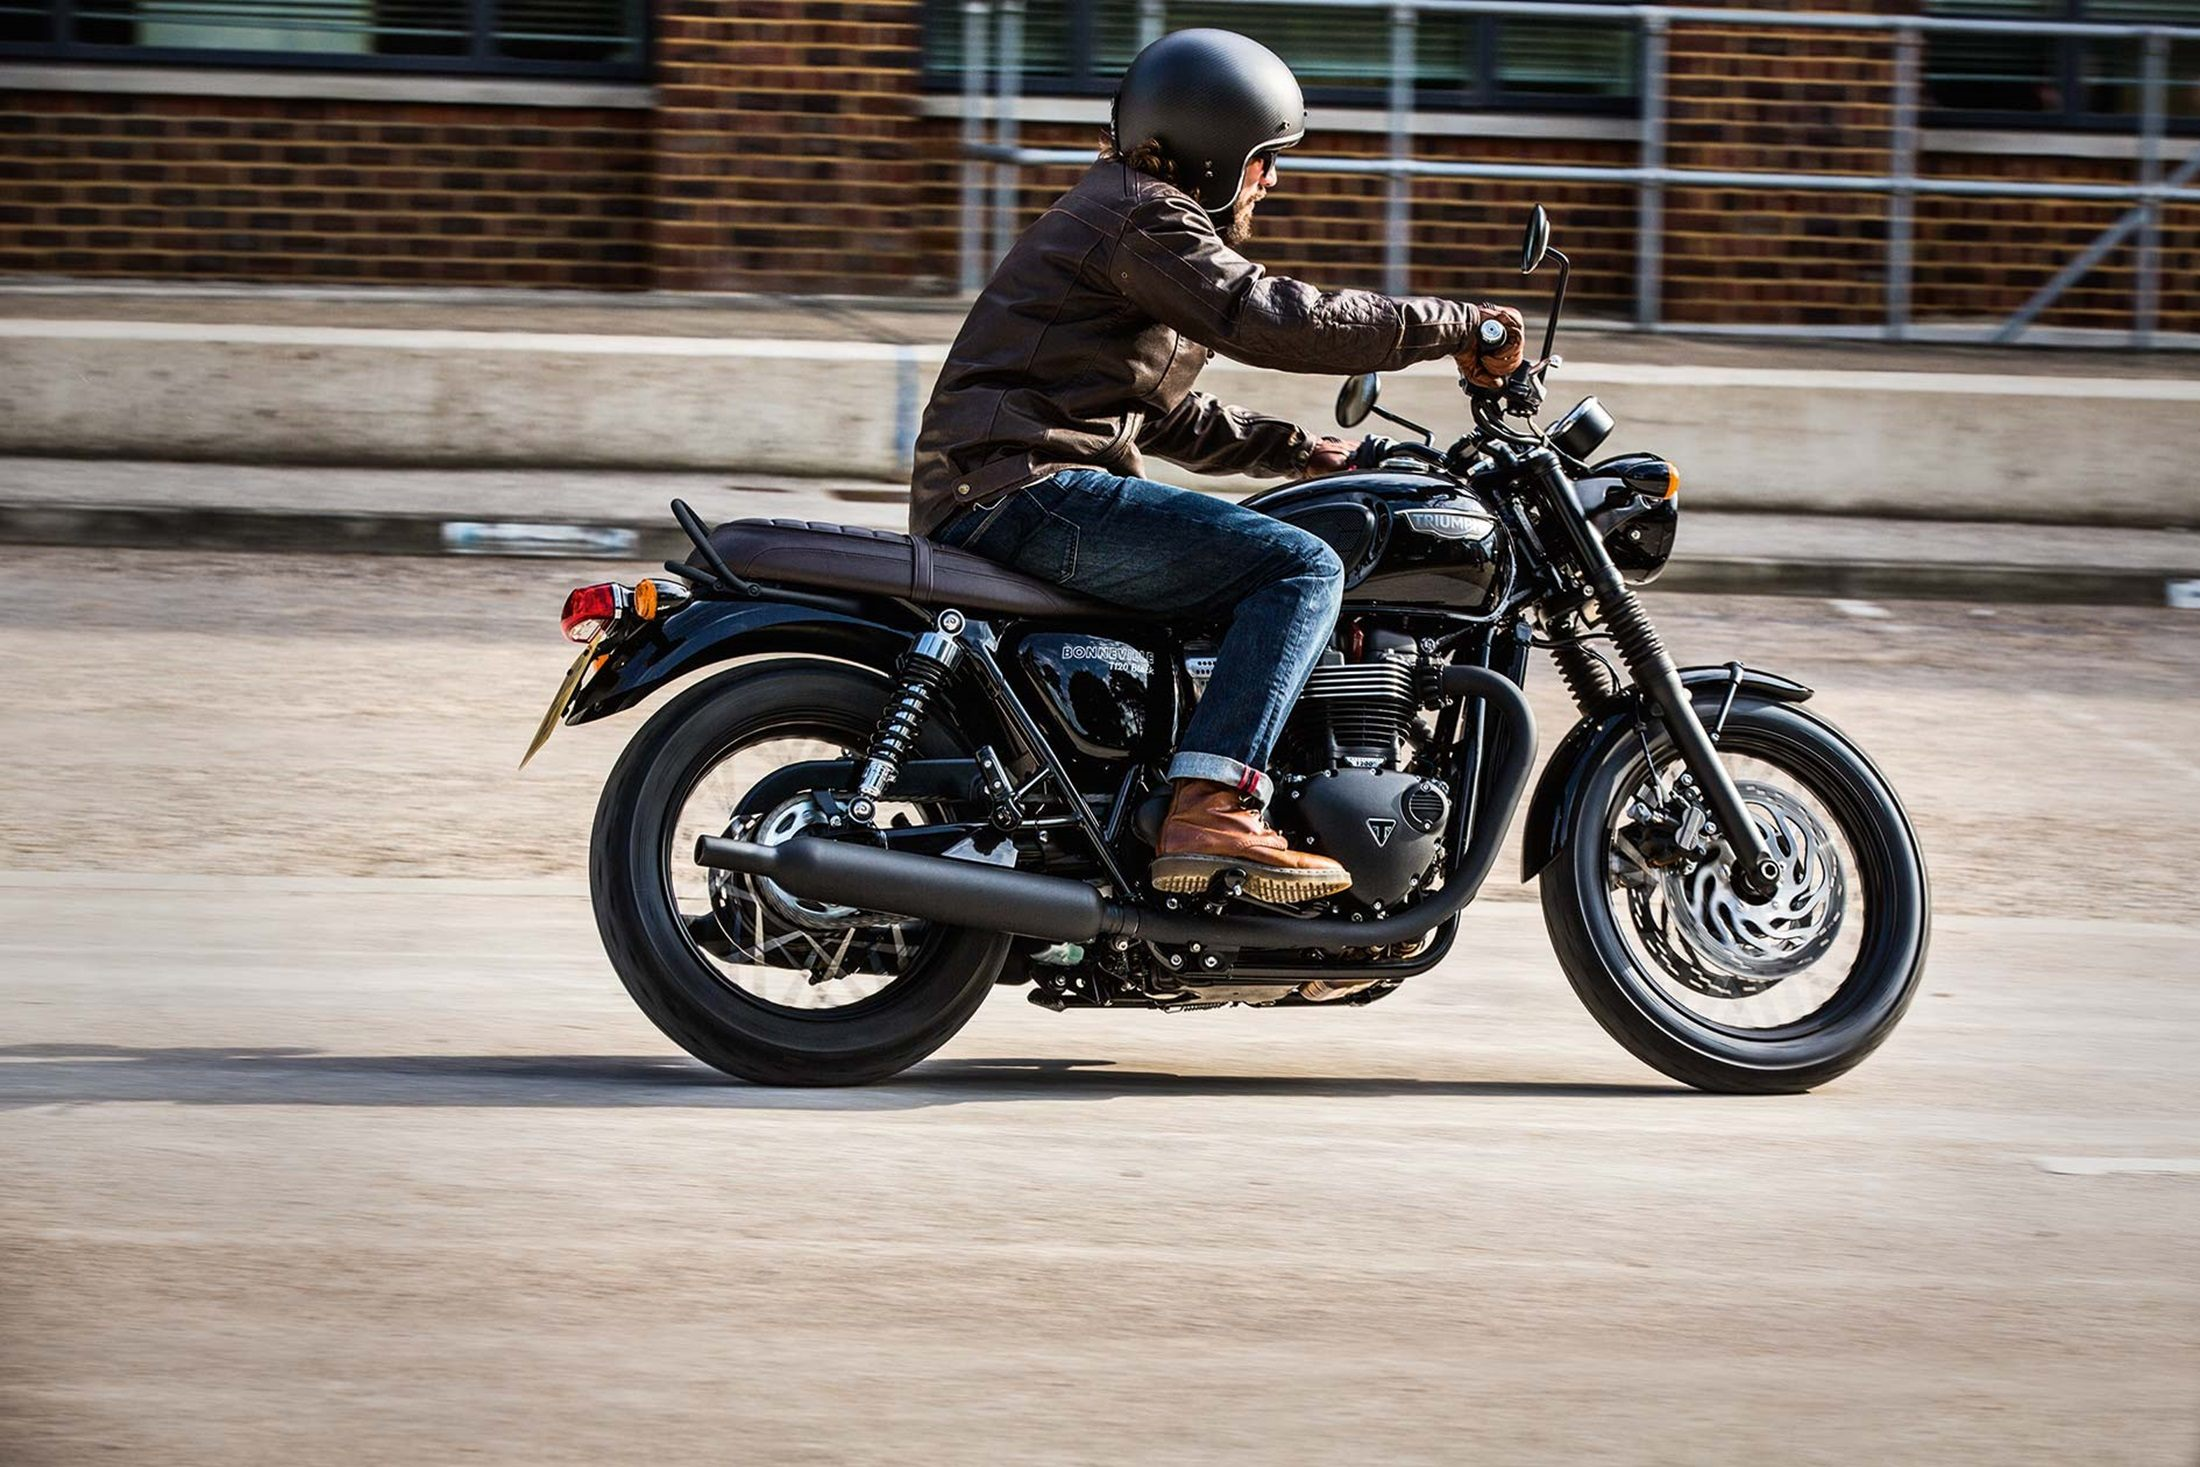 New 2017 Triumph Bonneville T120 Black Motorcycles in ...